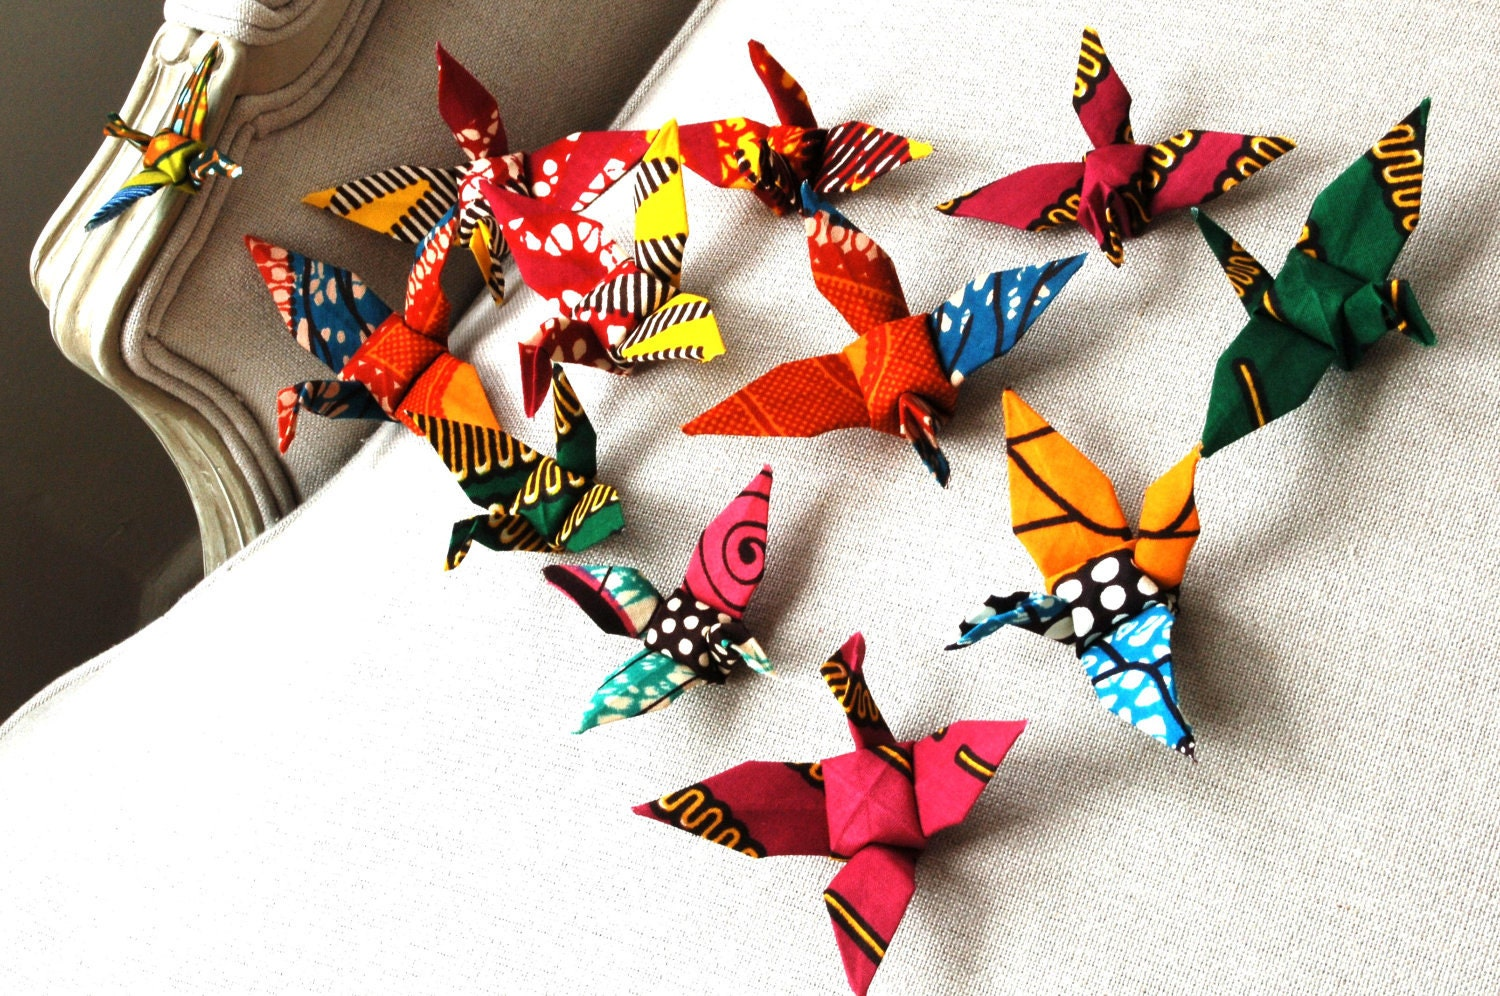 Party Decoration Handmade Origami Cranes Flock Of By